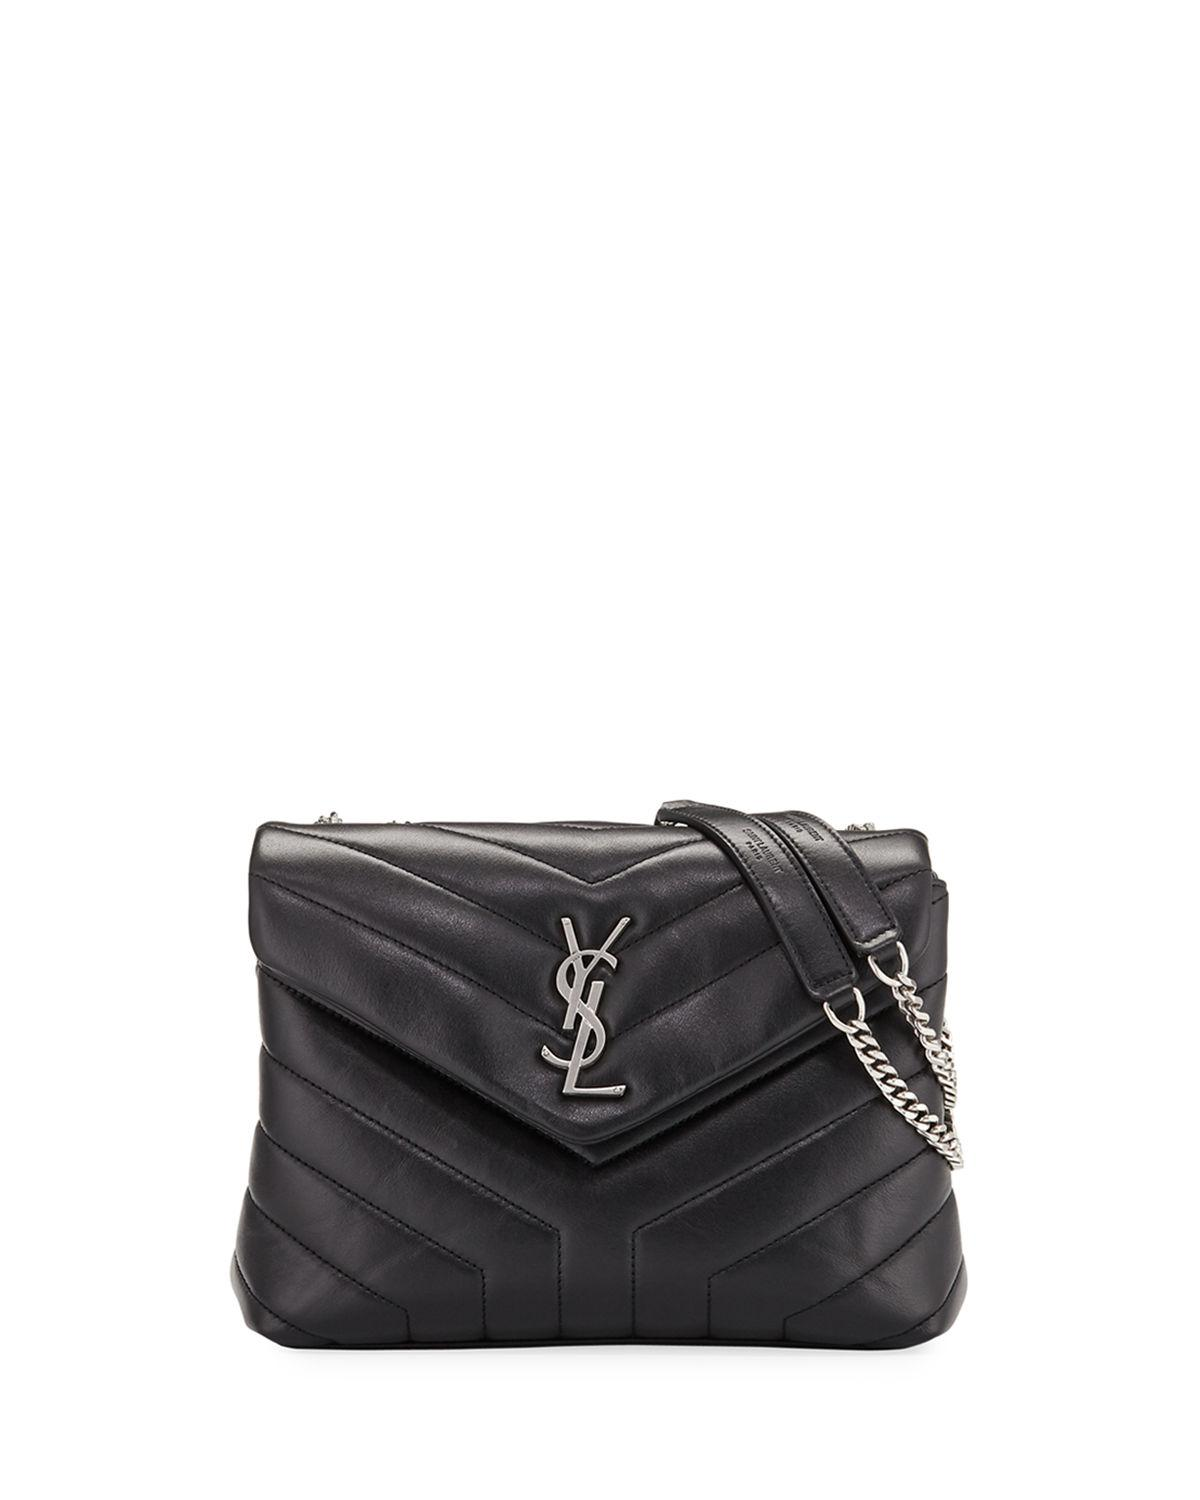 def93952c4 Saint Laurent. Women s Black Loulou Monogram Ysl Small V-flap Chain  Shoulder Bag ...